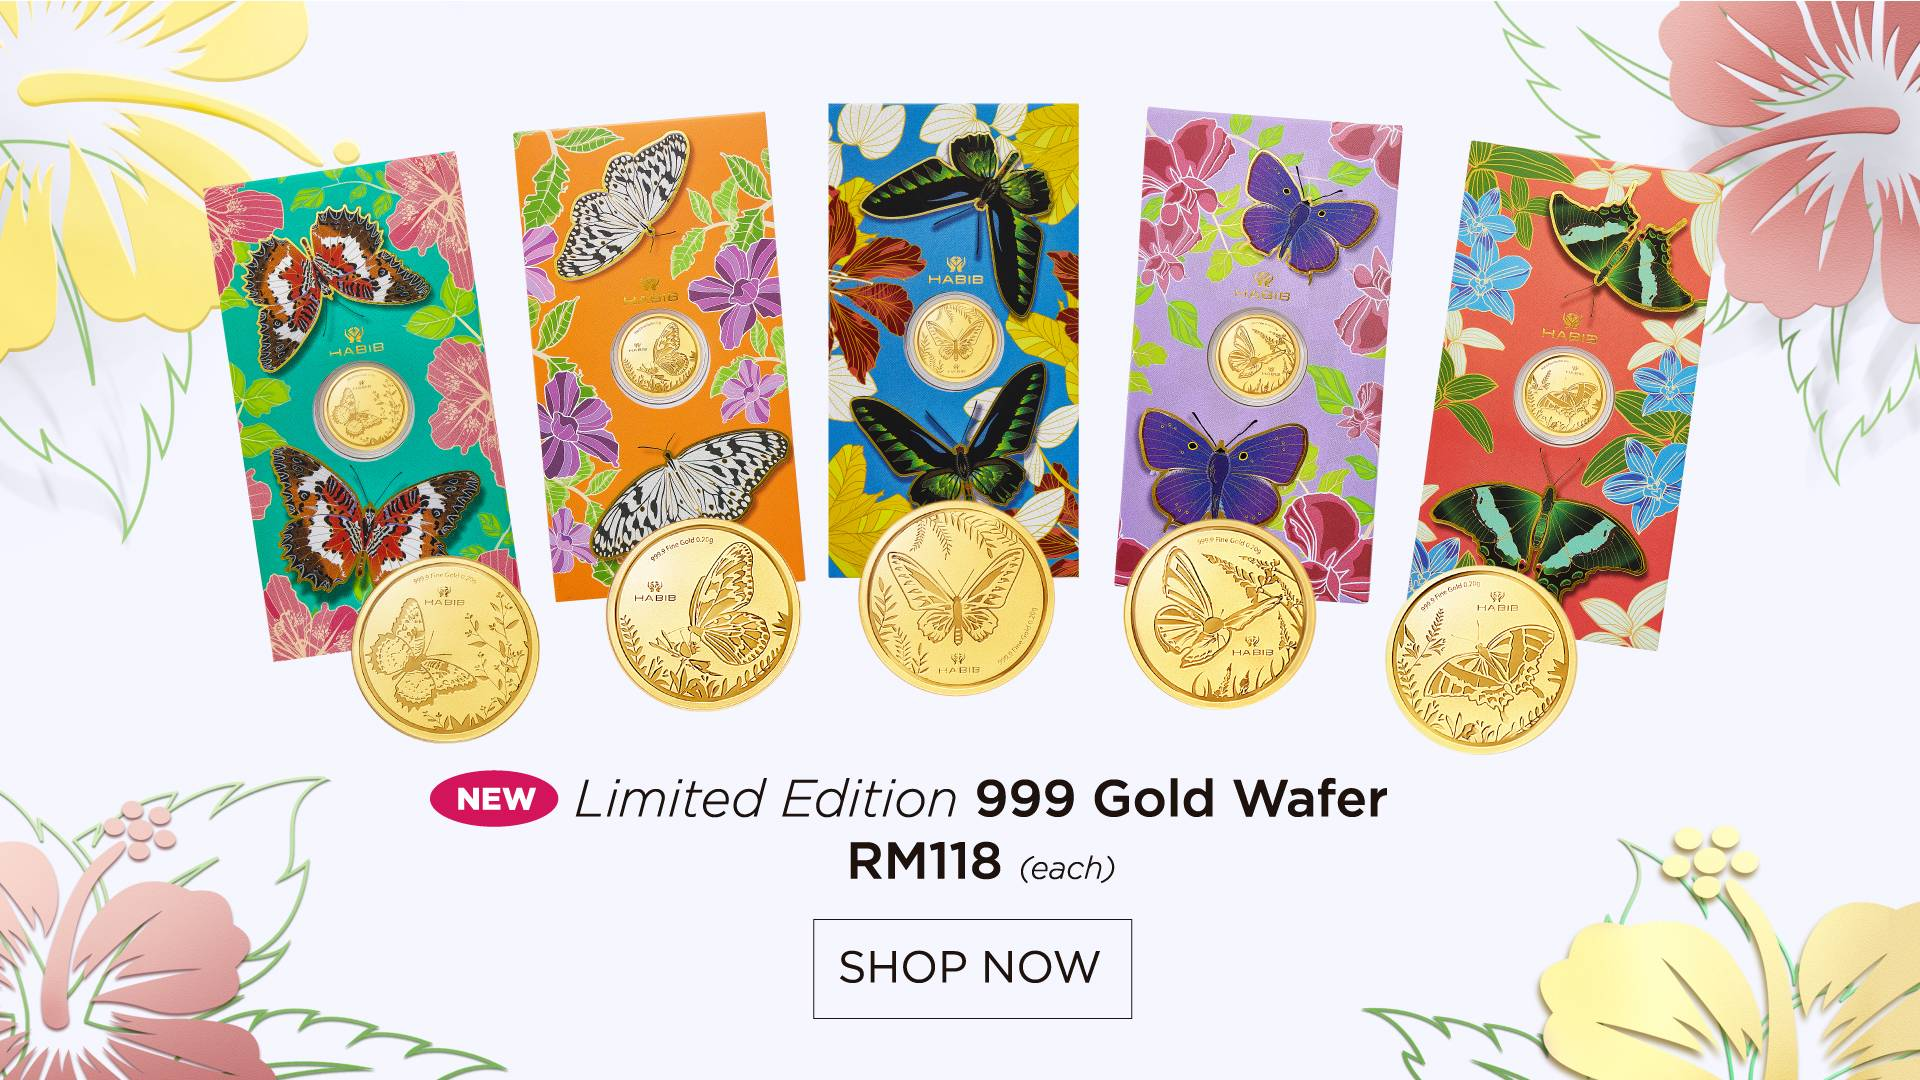 Butterfly Gold Wafer